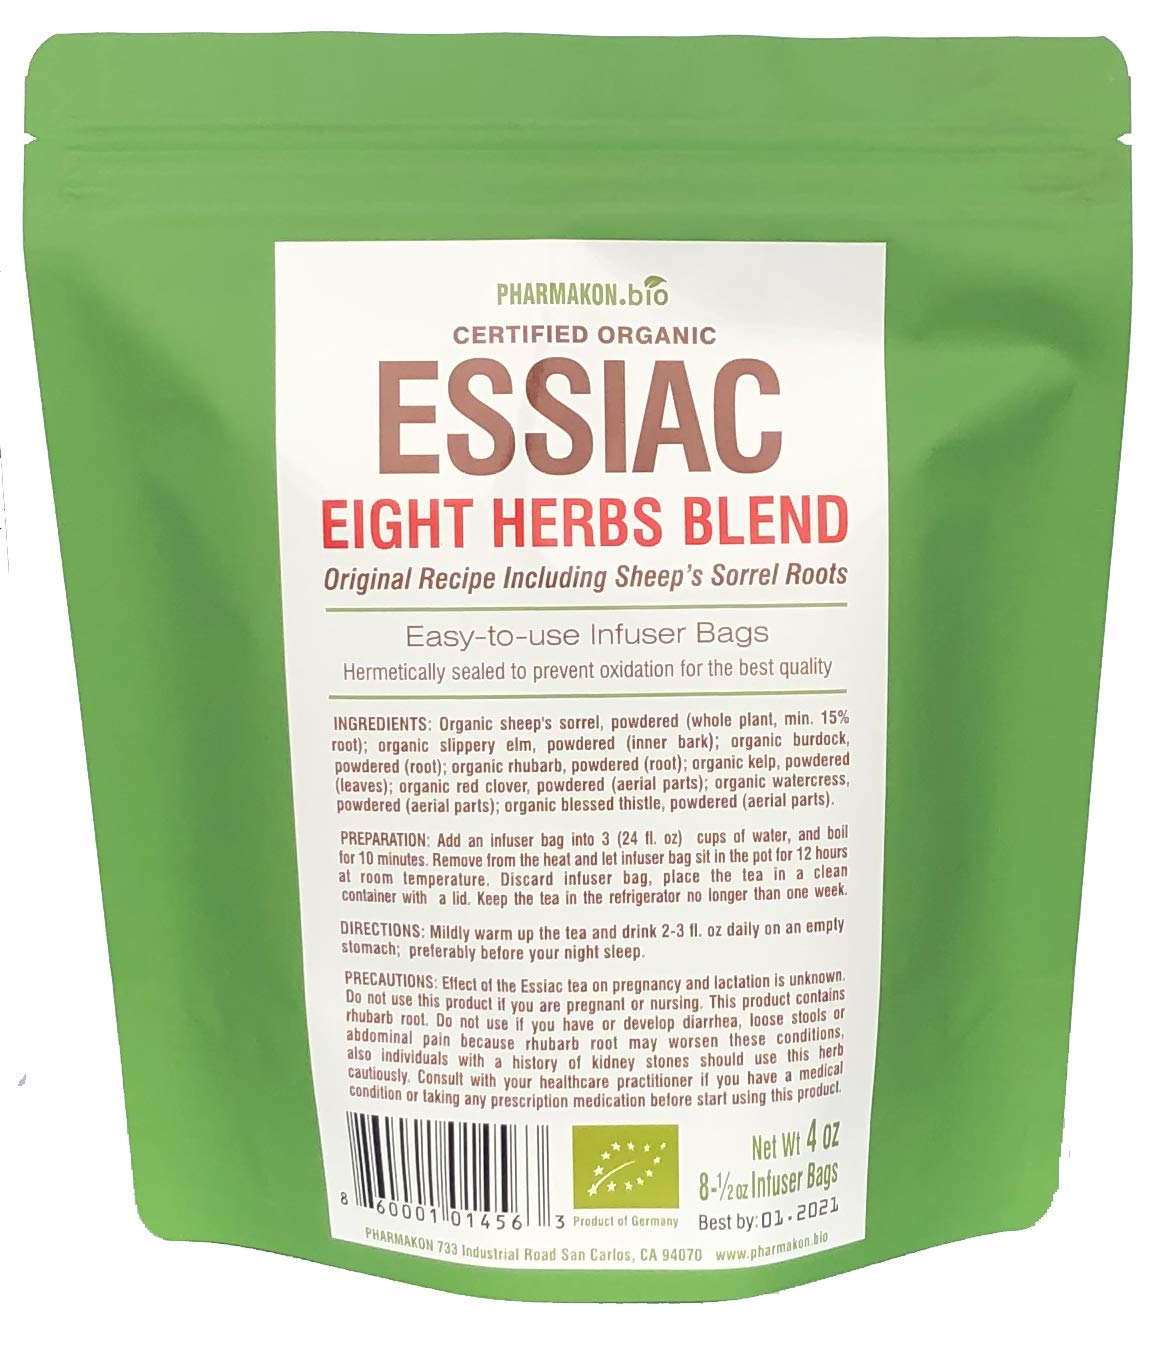 Organic Essiac Tea Infuser Bags. 8 Herbs Recipe Including Sheep Sorrel Roots. Easy To Use Infuser Bags, Approx 8 Weeks Supply (8 Infuser bags). by PHARMAKON